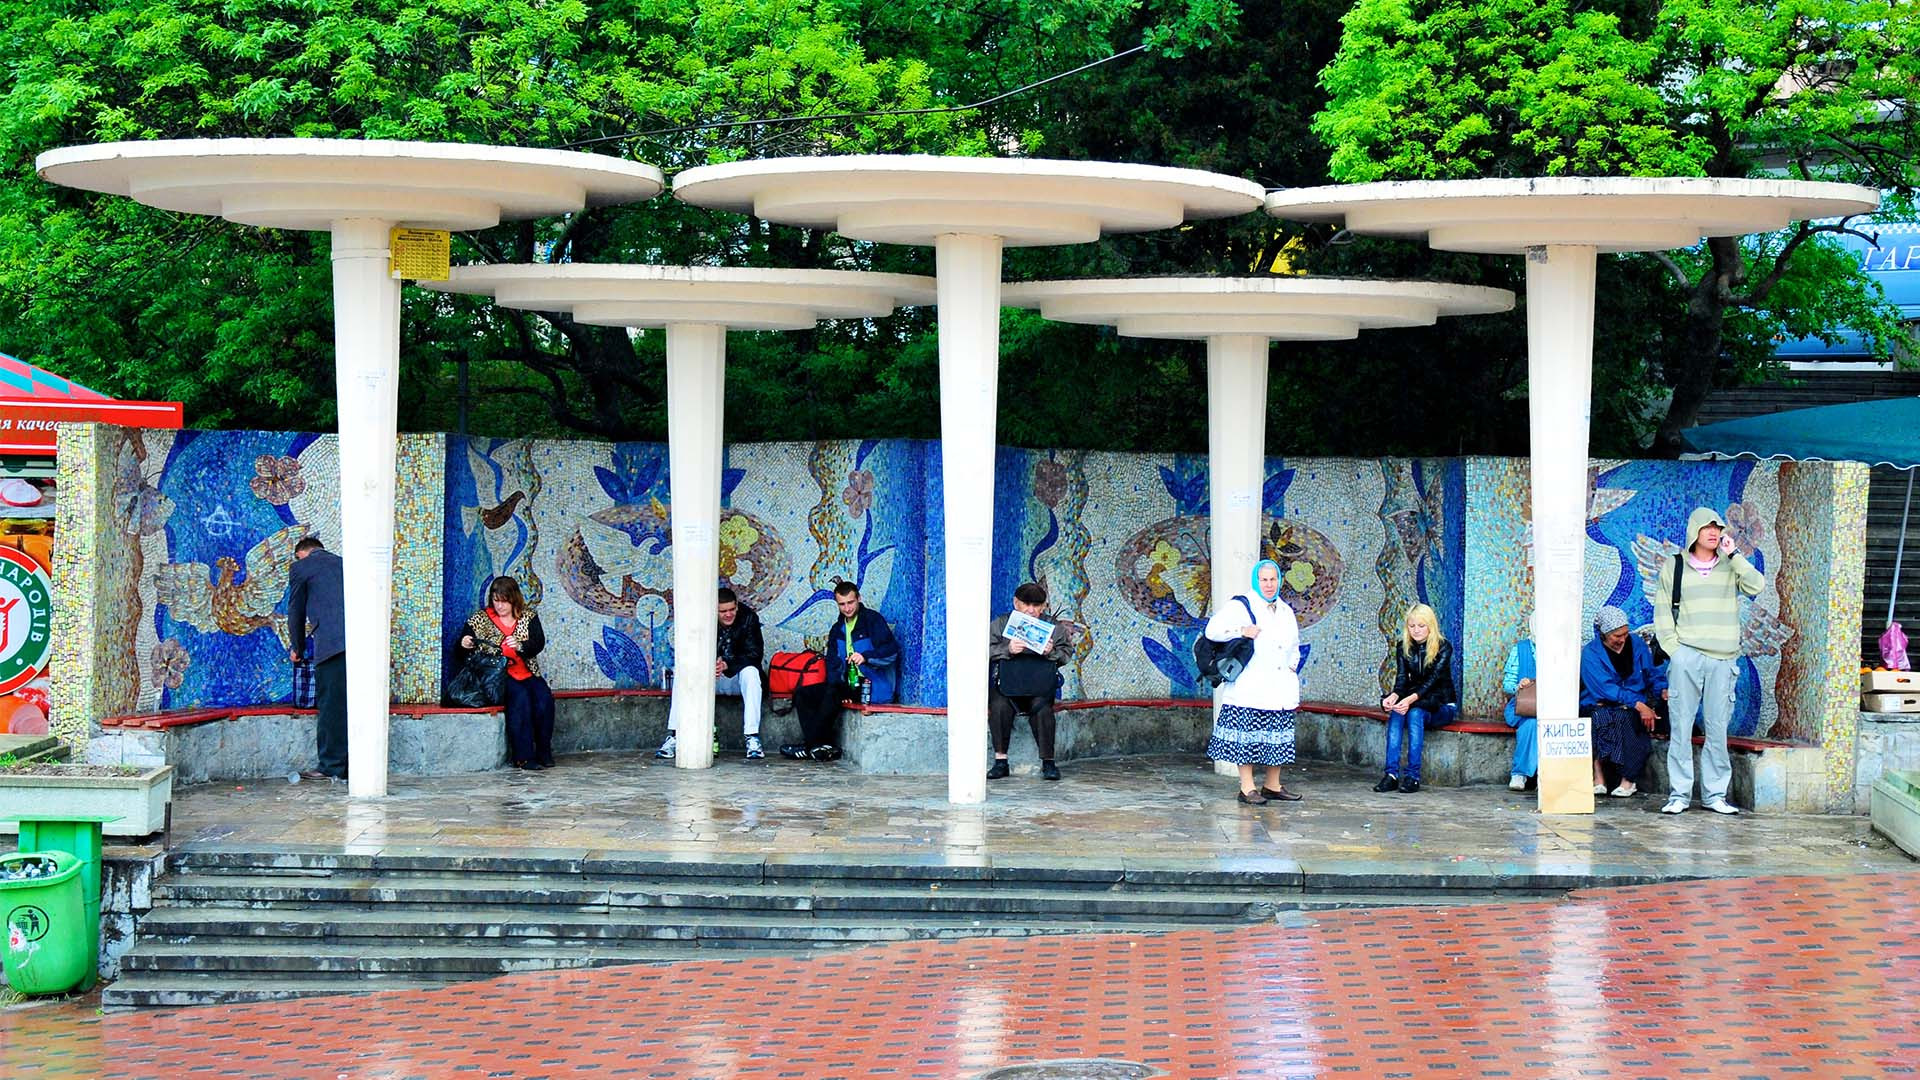 Distinctive Ukrainian urban bus shelter